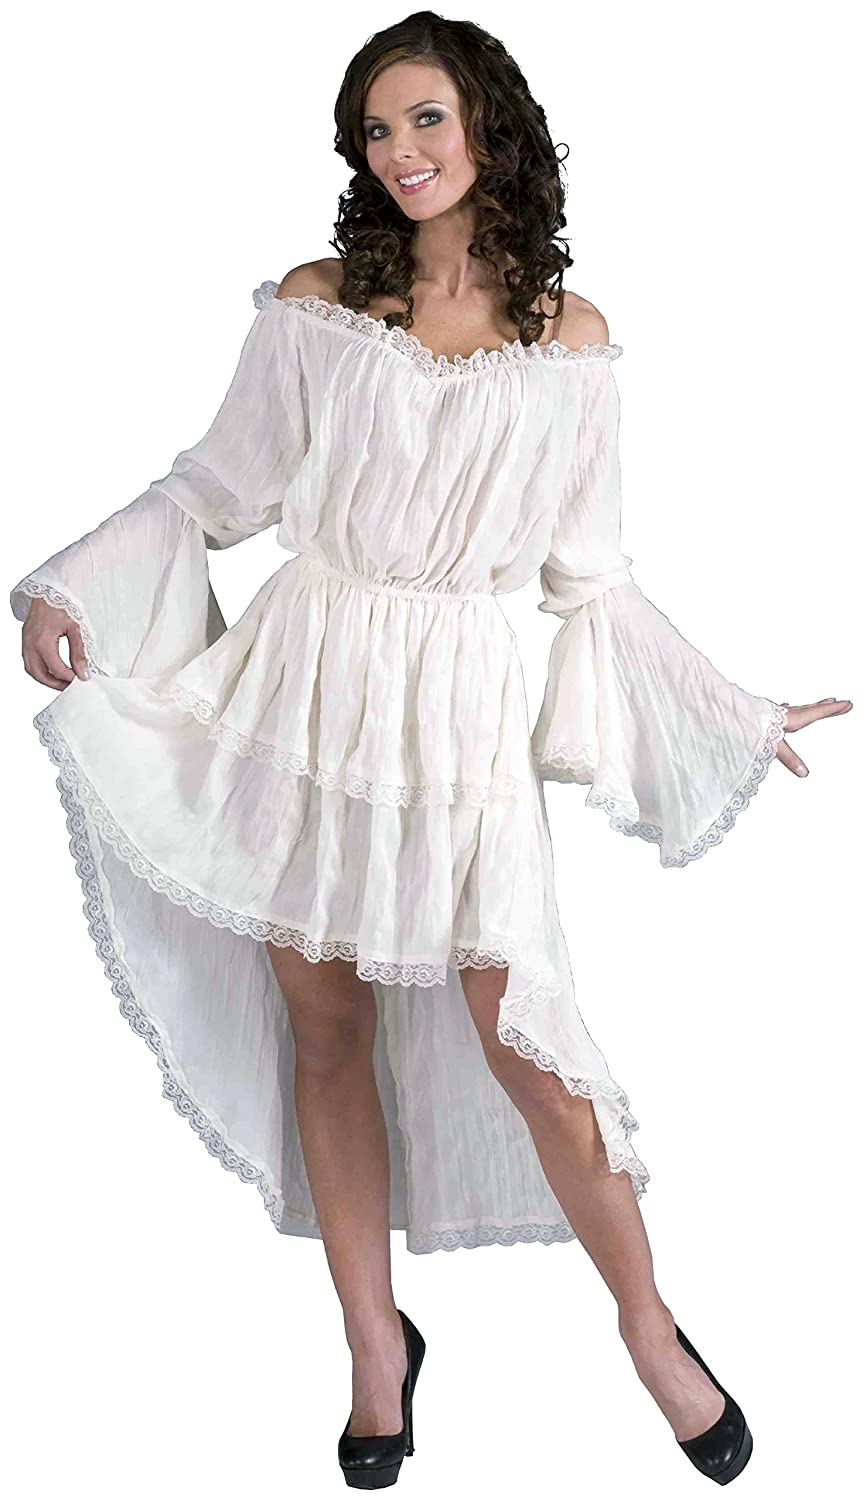 Women's Ruffled White Gauze Hi-Low Lace Pirate Chemise - DeluxeAdultCostumes.com